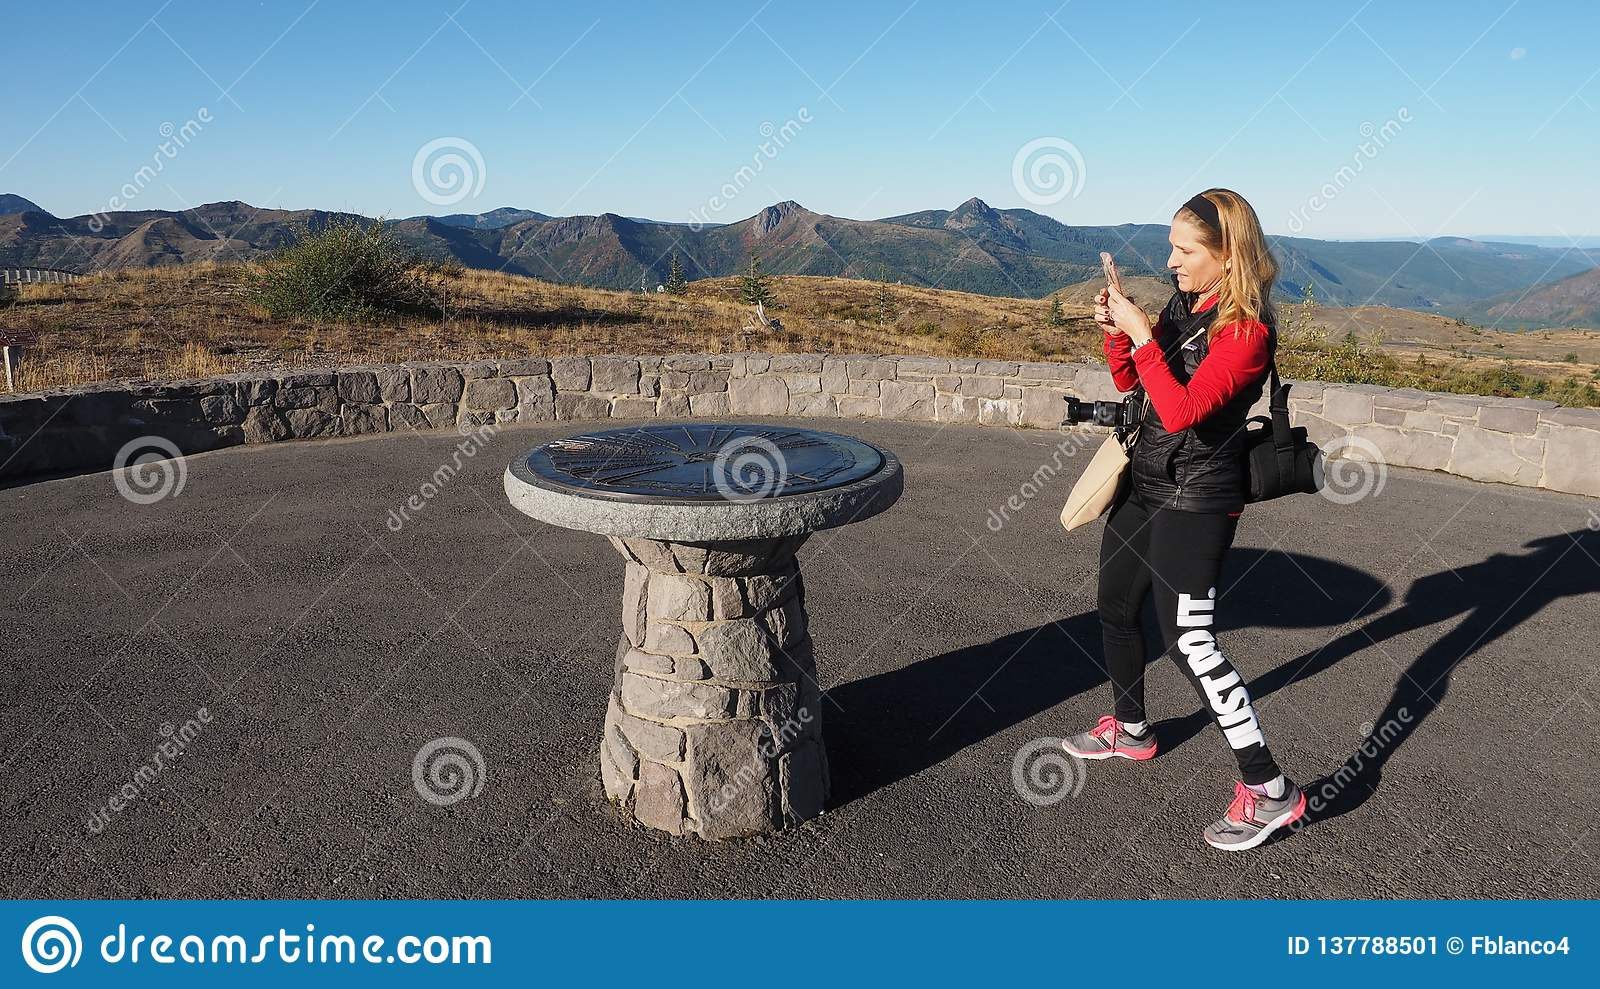 Woman photographing a directional monument at Mount Saint Helens National Volcanic Monument.